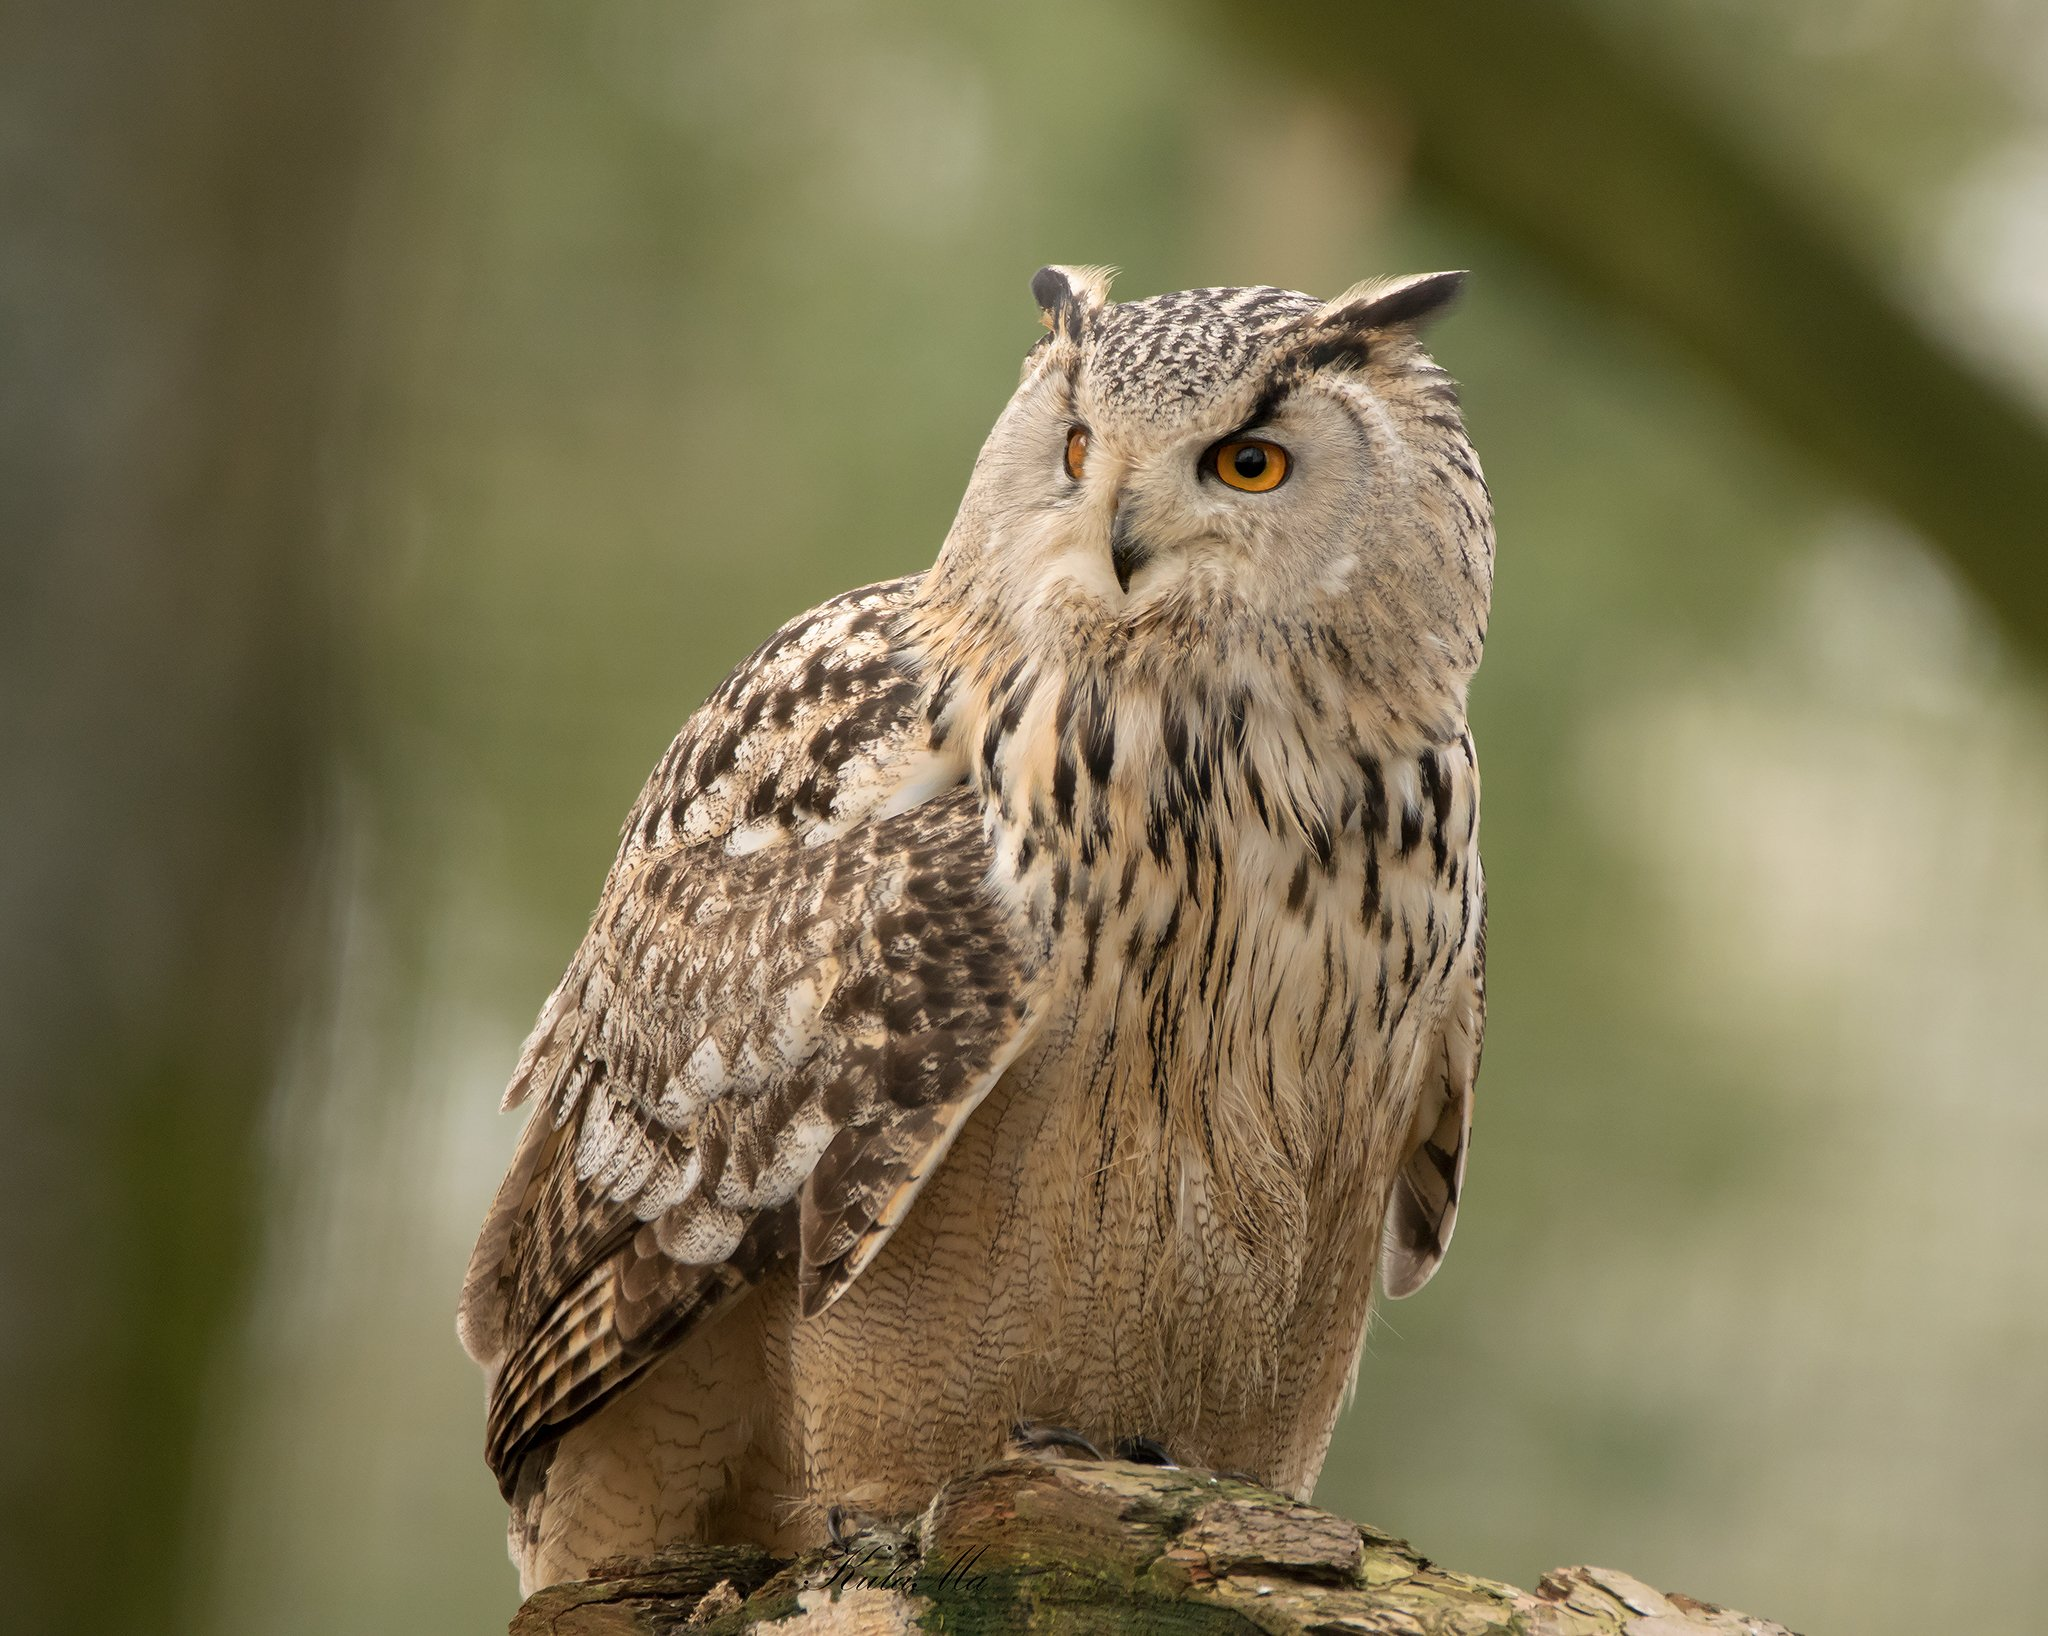 eagle owl, owl, birds of prey, birds, raptors, MARIA KULA